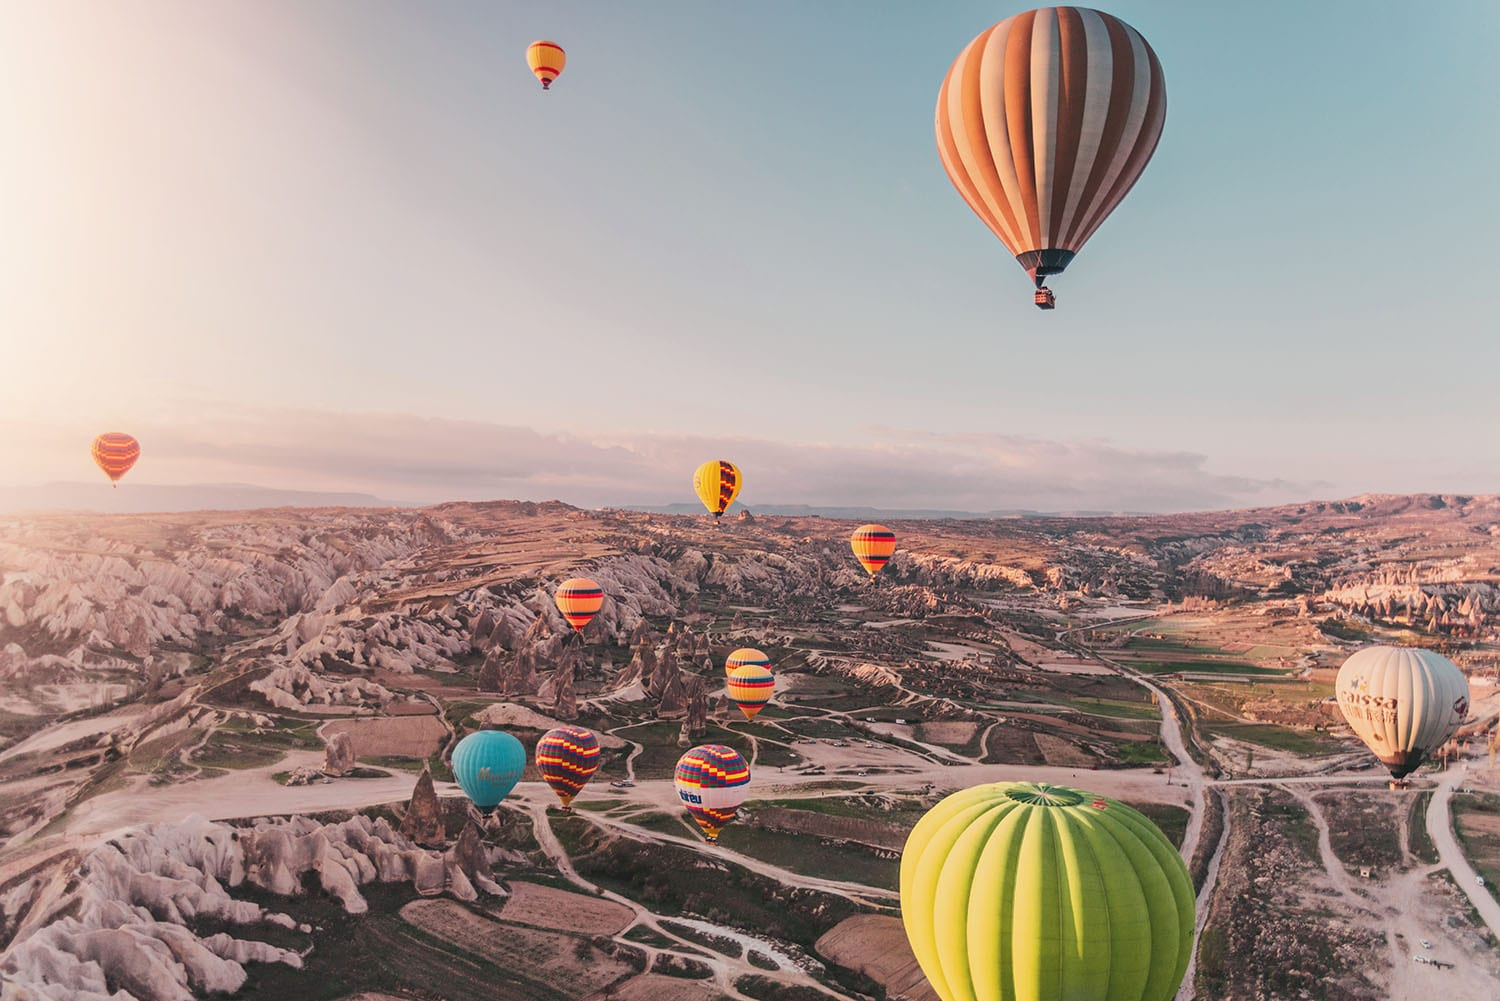 Magical sunrise & hot air ballooning in Cappadocia, Turkey